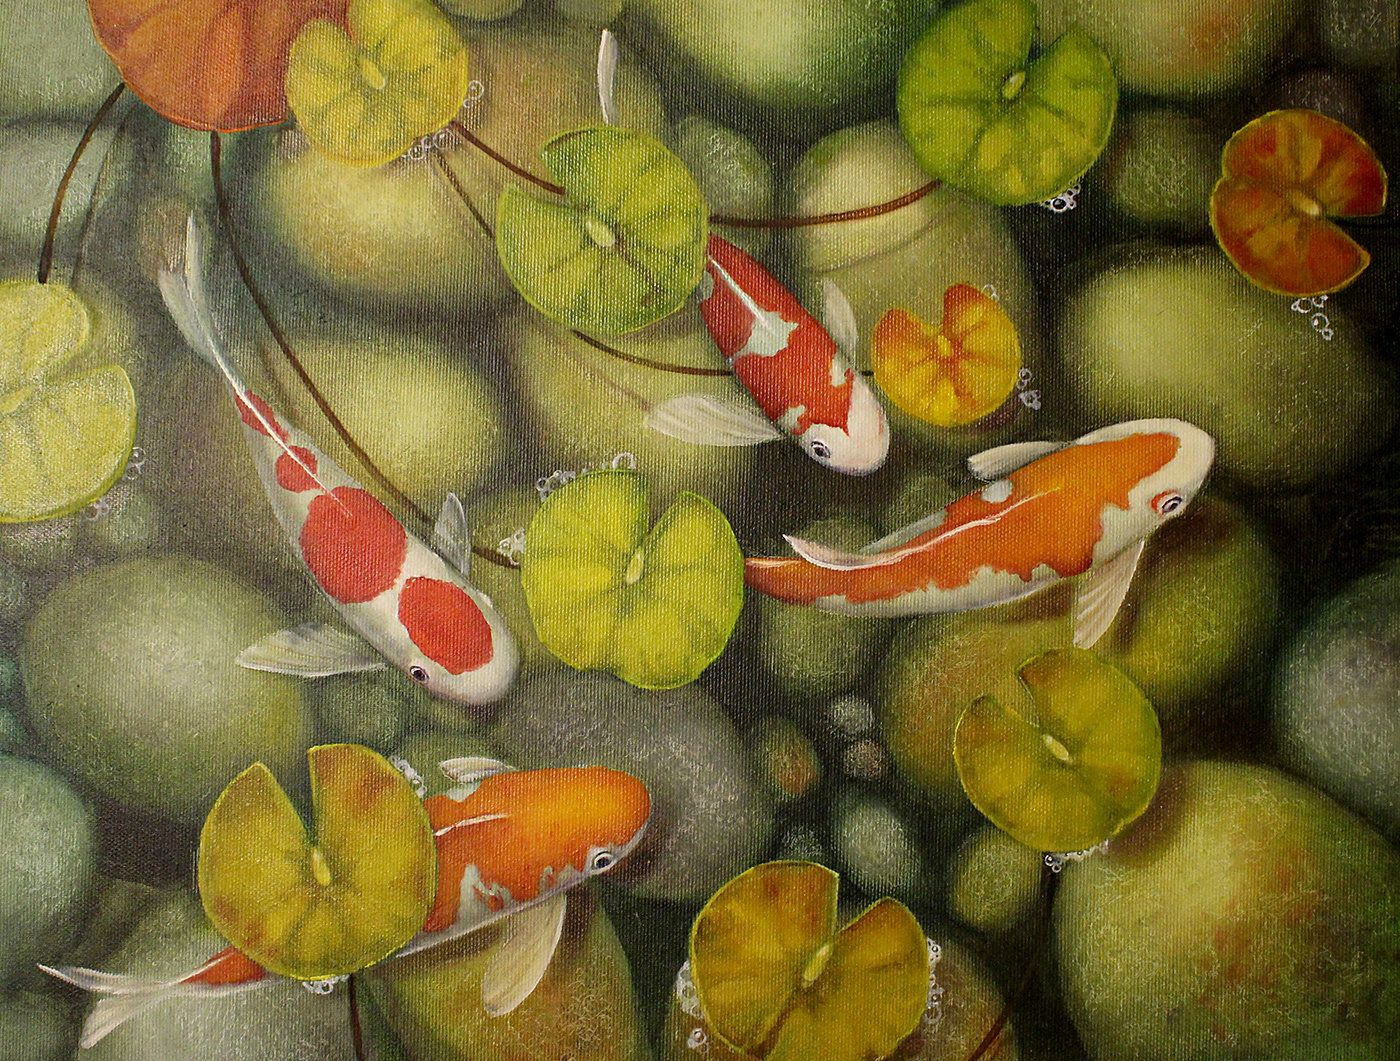 Koi Fish Painting Koi Fish Art Canvas Koi Home Decor Original Art Decor  Fine Art Painting